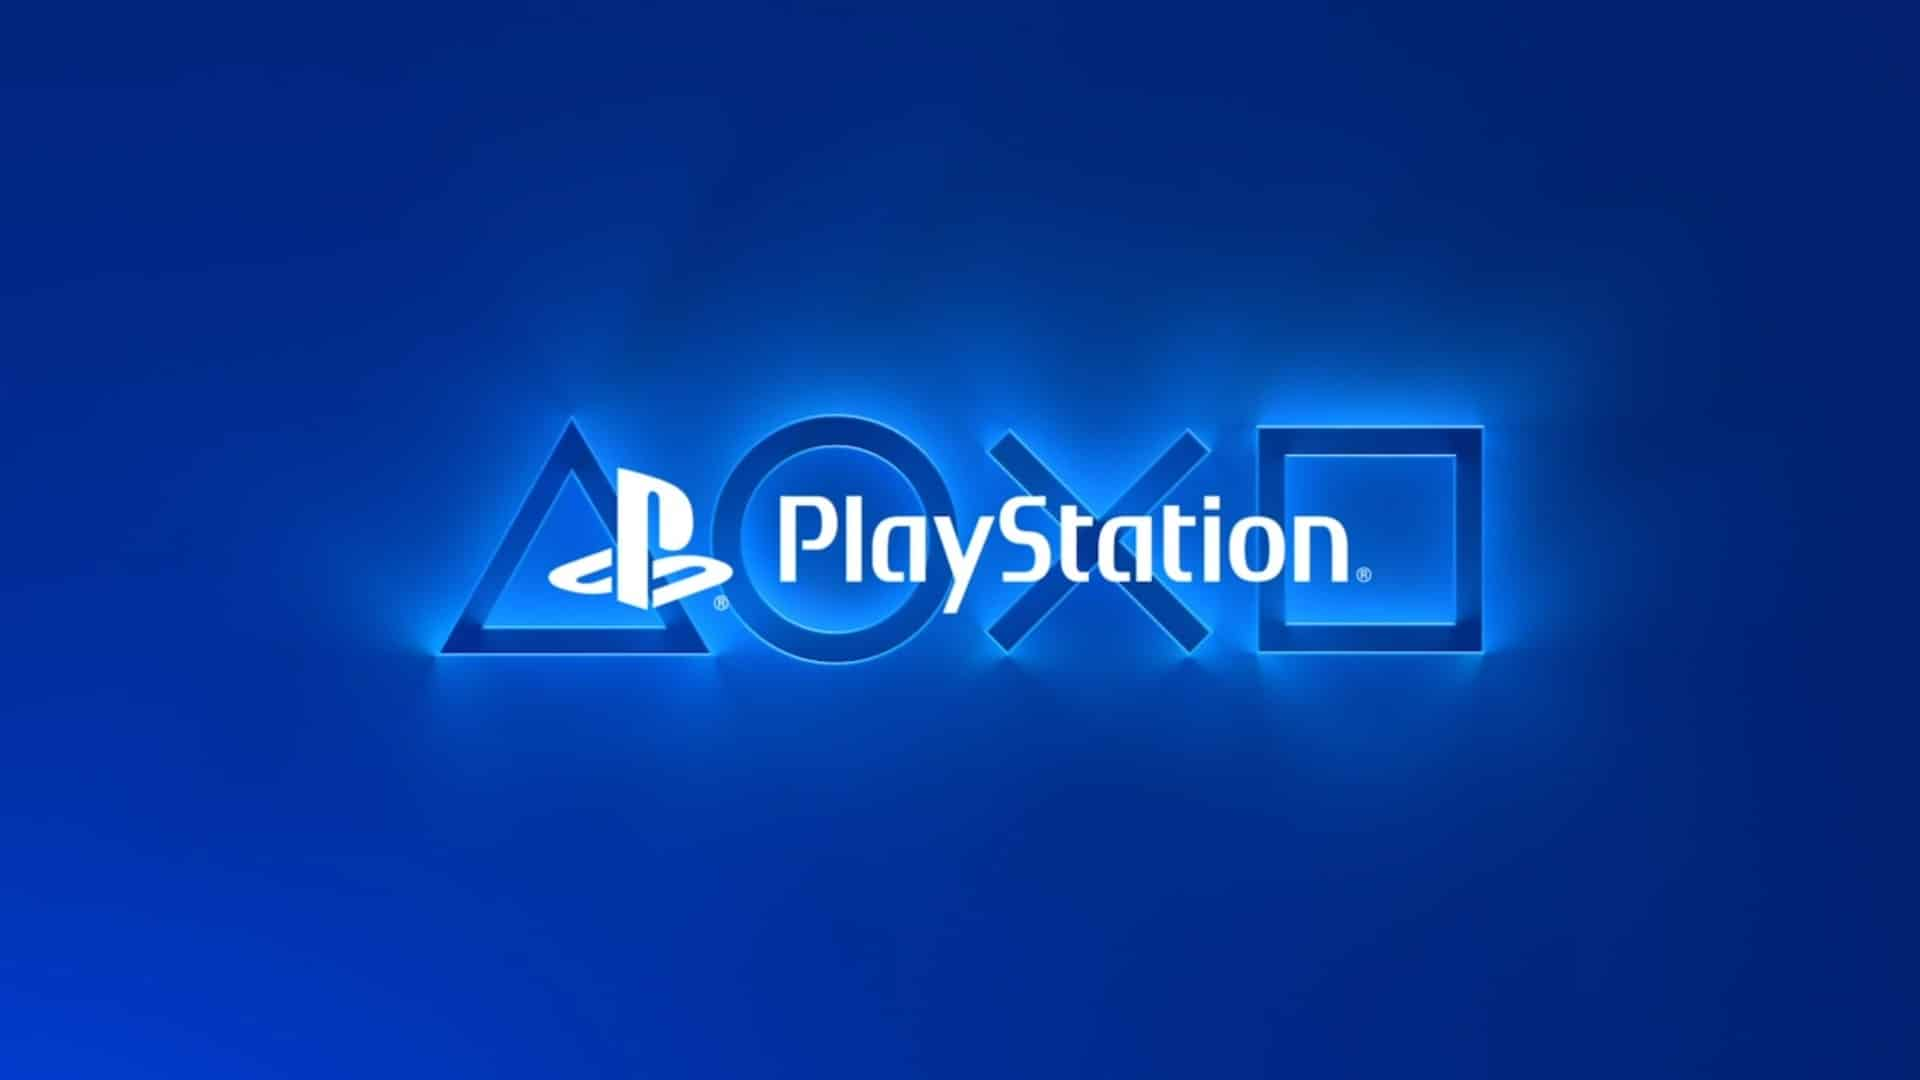 August State of Play PS4 PS5 Godfall Crash Bandicoot